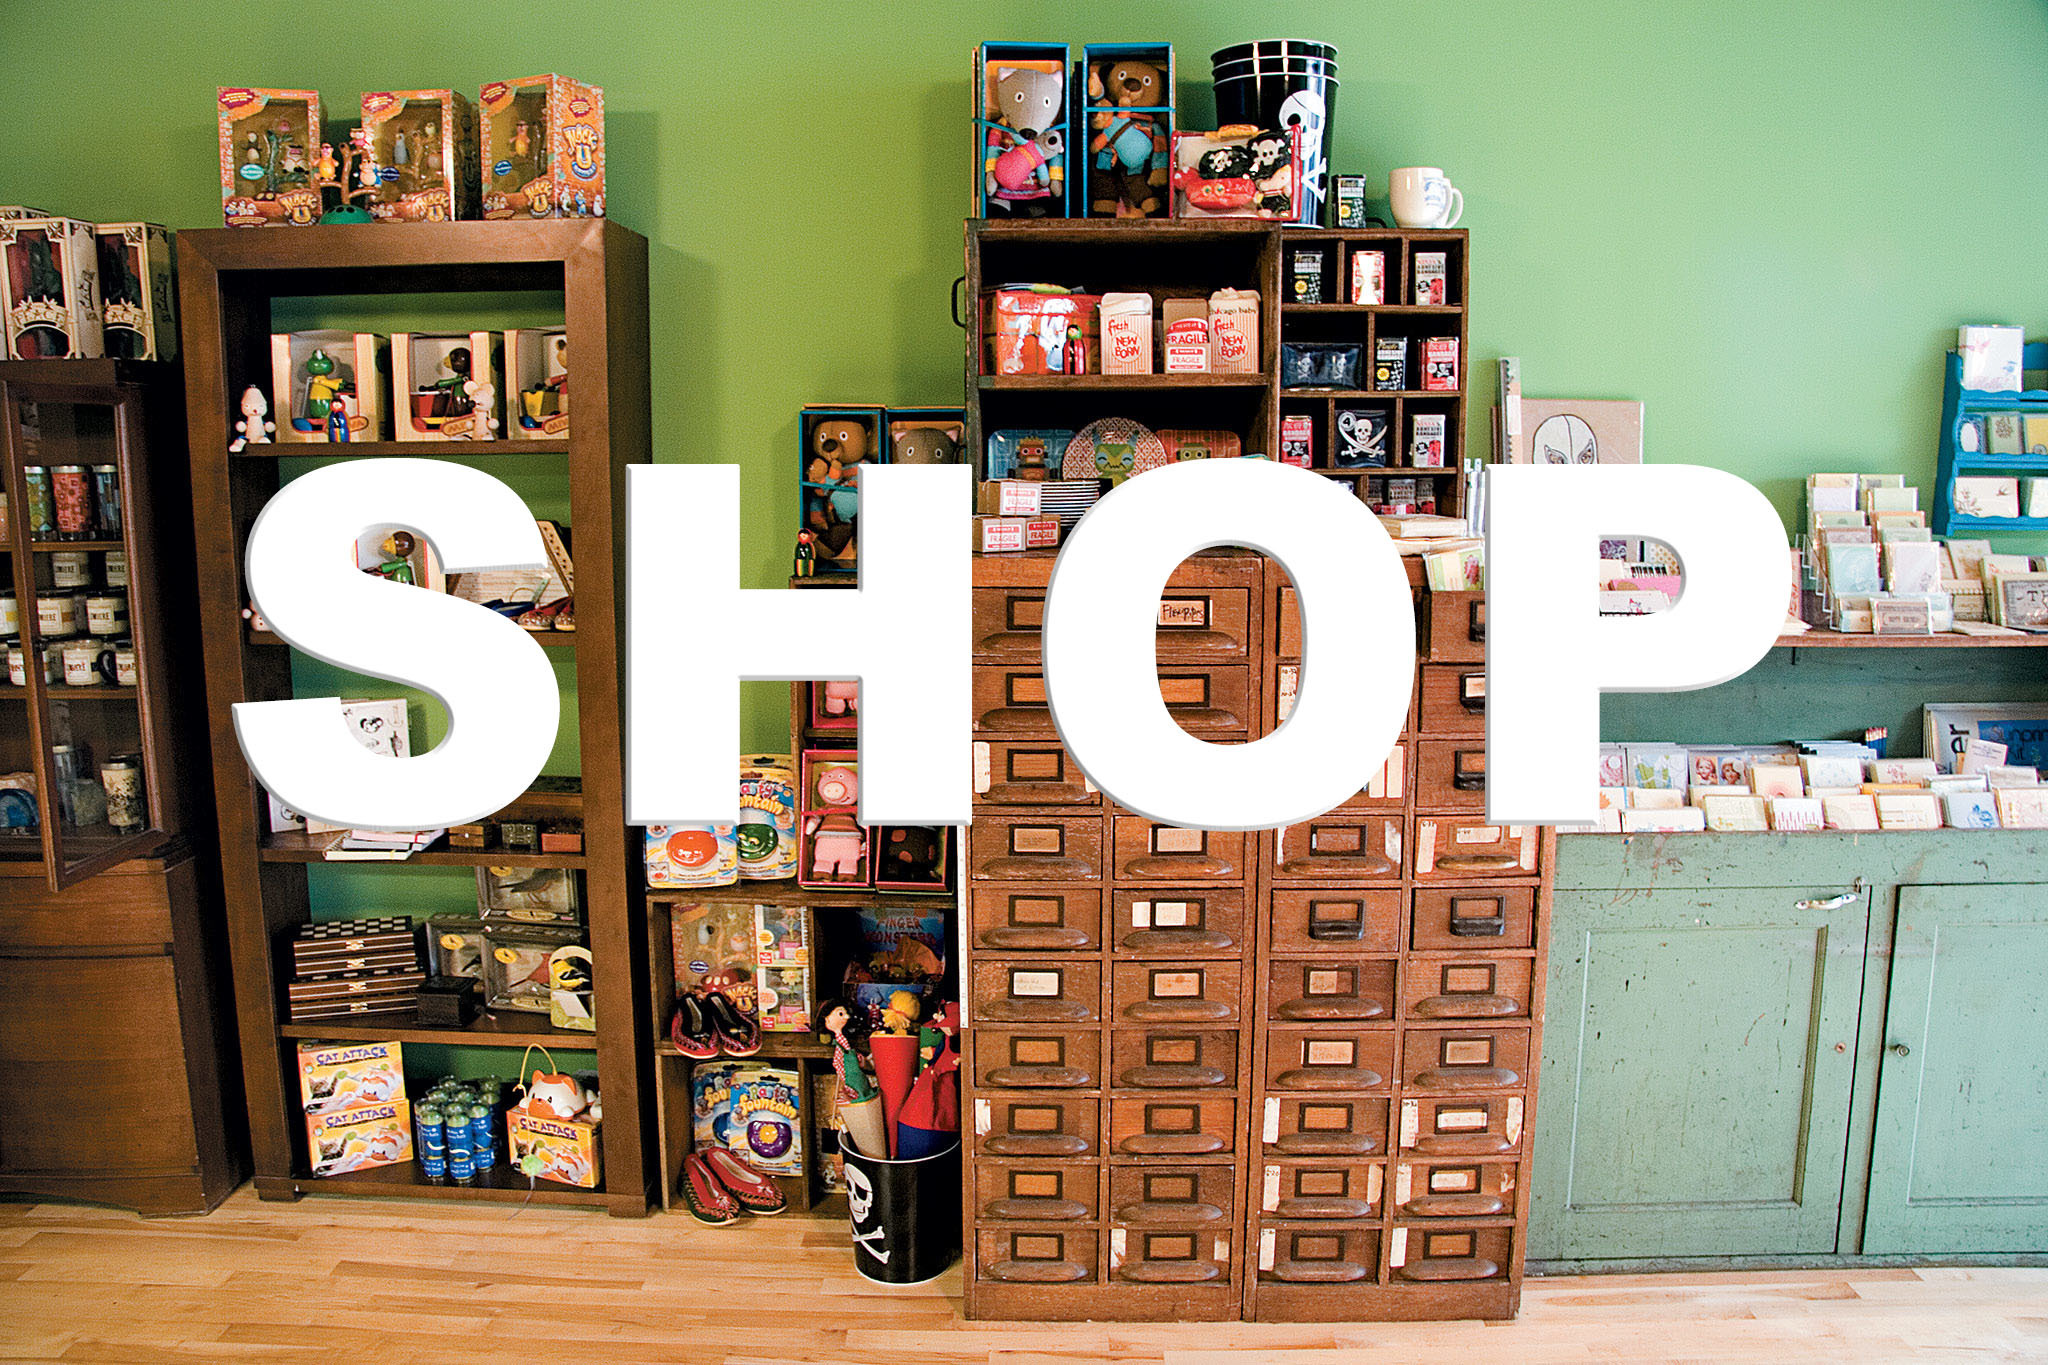 The best shops in Humboldt Park